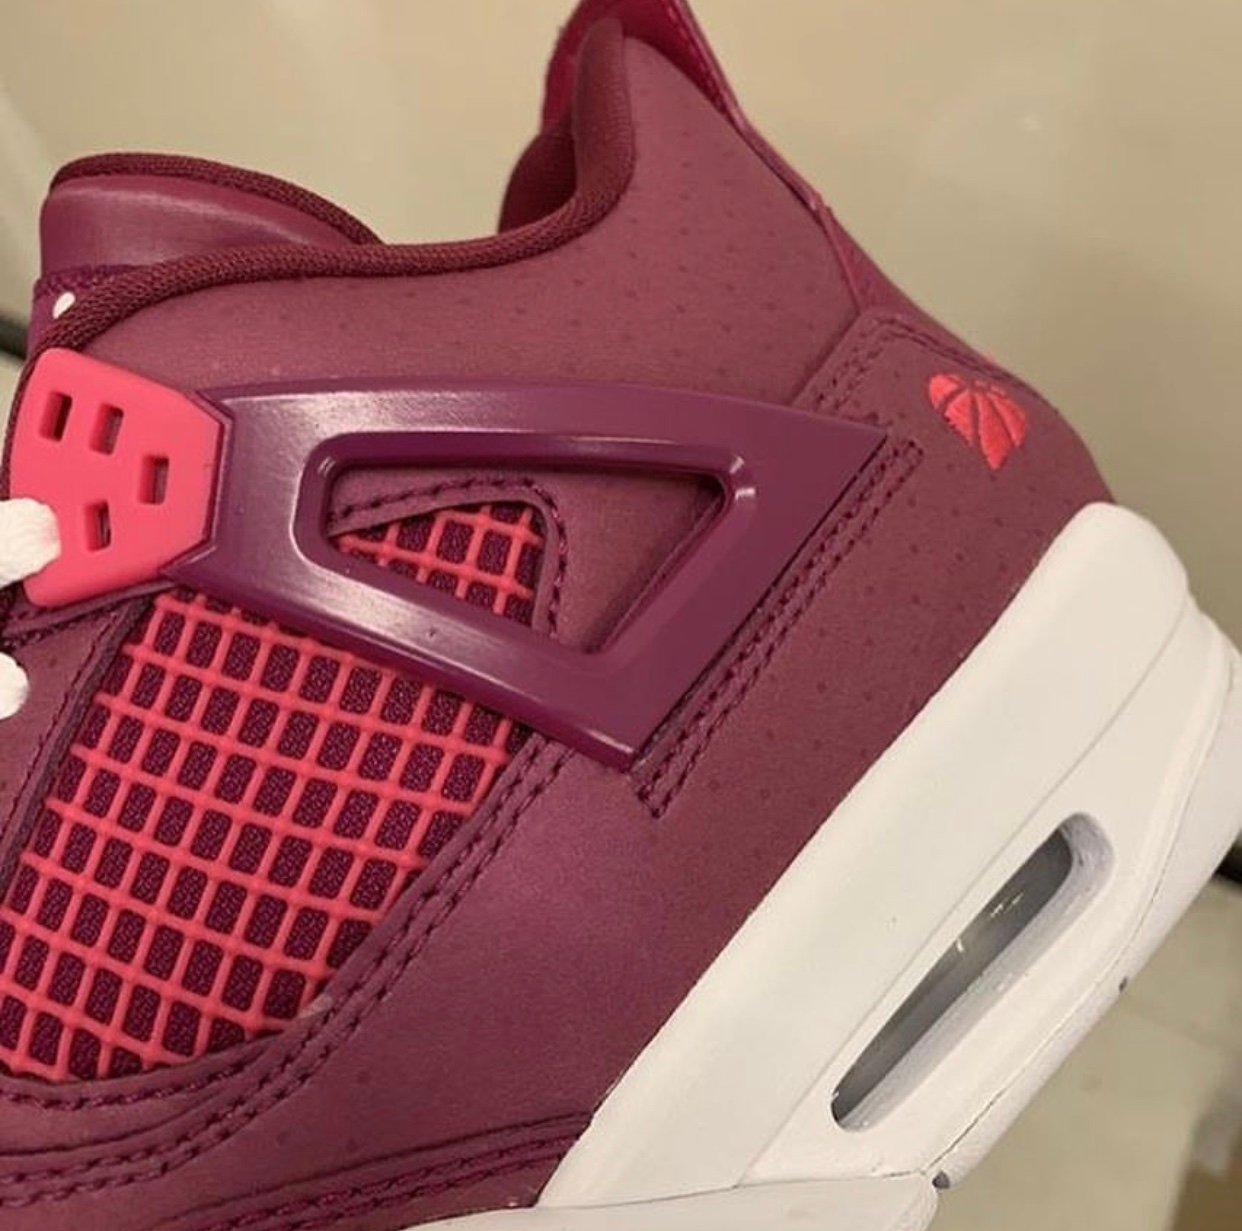 41c3b02c9f61 Air Jordan 4 True Berry Valentine s Day 487724-661 Release Date ...